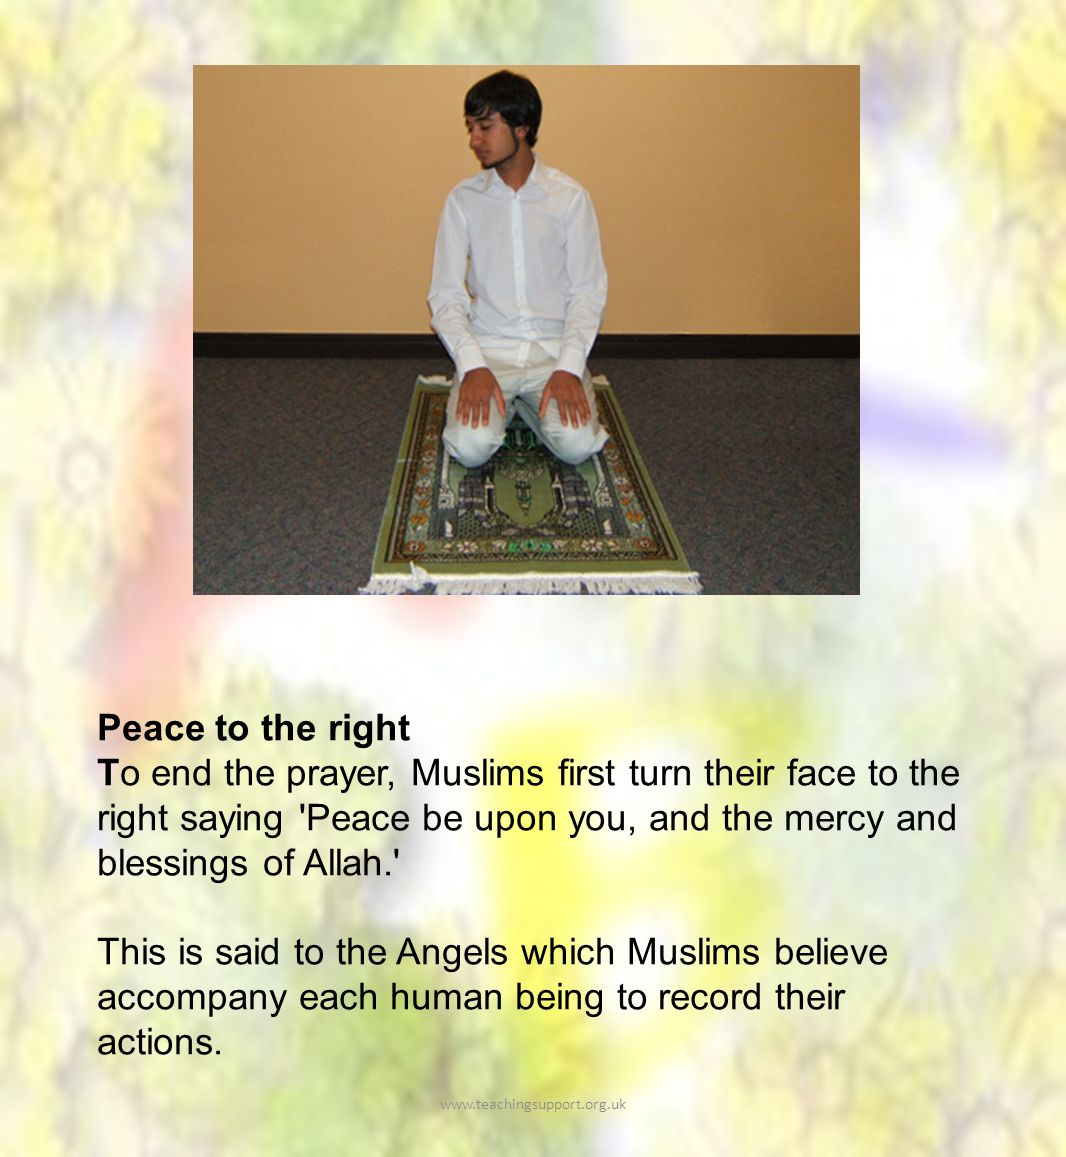 Peace to the right To end the prayer, Muslims first turn their face to the right saying Peace be upon you, and the mercy and blessings of Allah. This is said to the Angels which Muslims believe accompany each human being to record their actions.